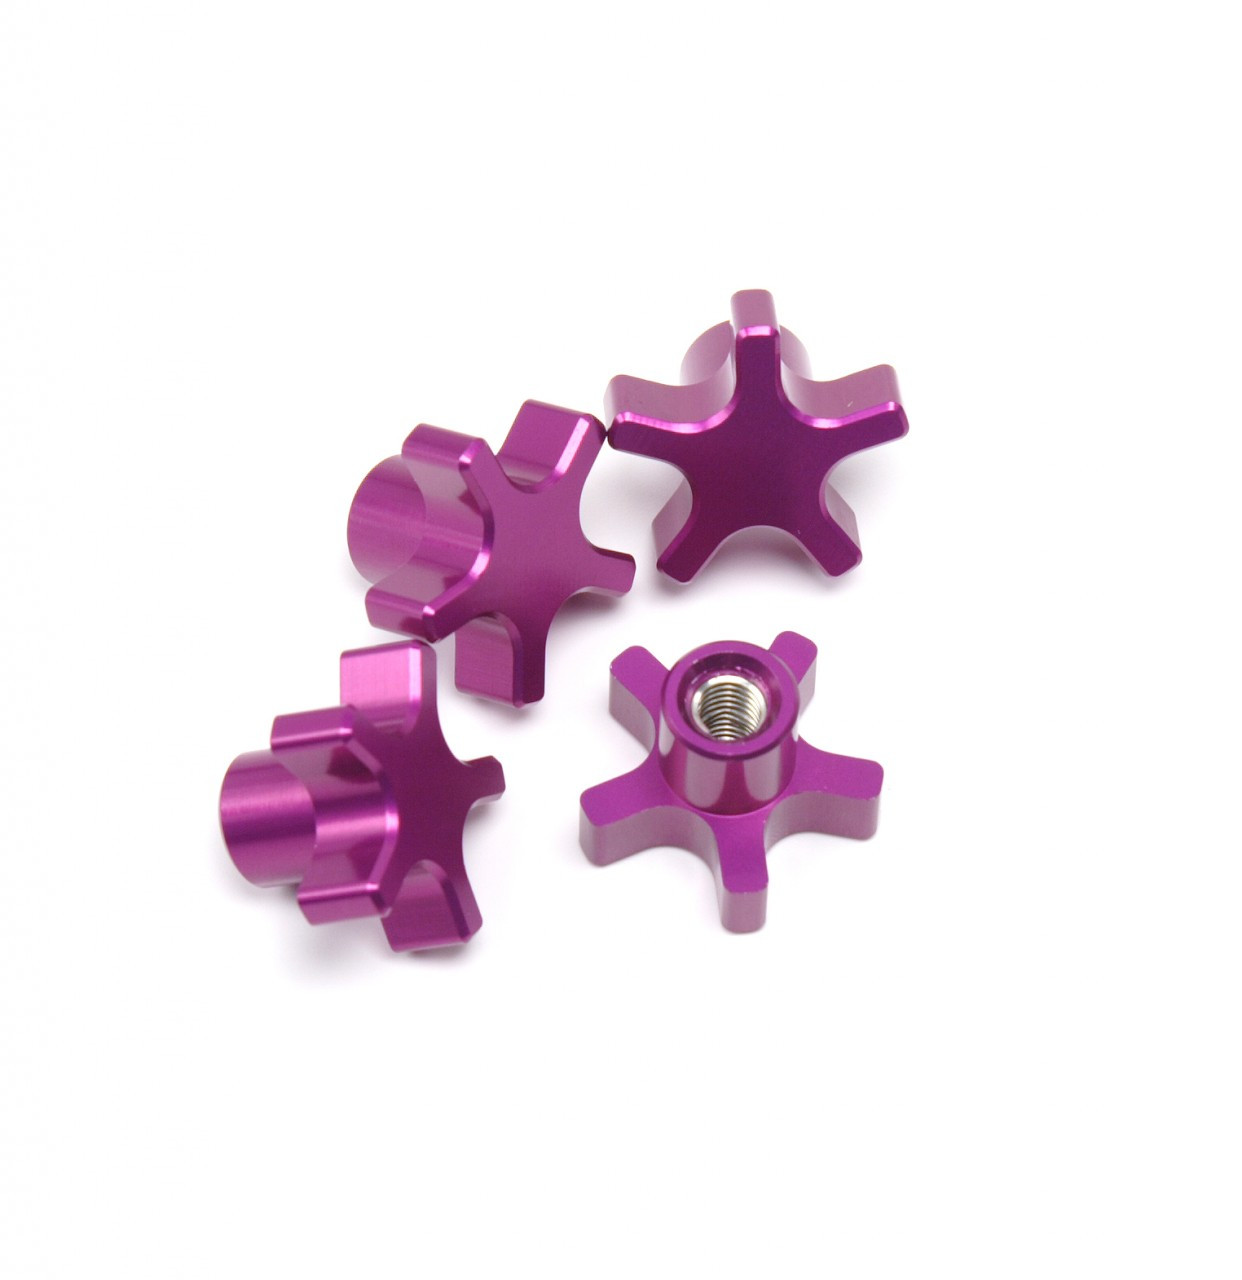 Traxxas T-MAXX E-MAXX 5 Spoke Purple Anodized locking hub nuts.  Get rid of those stock 5mm lock nuts and pop some of these in there!